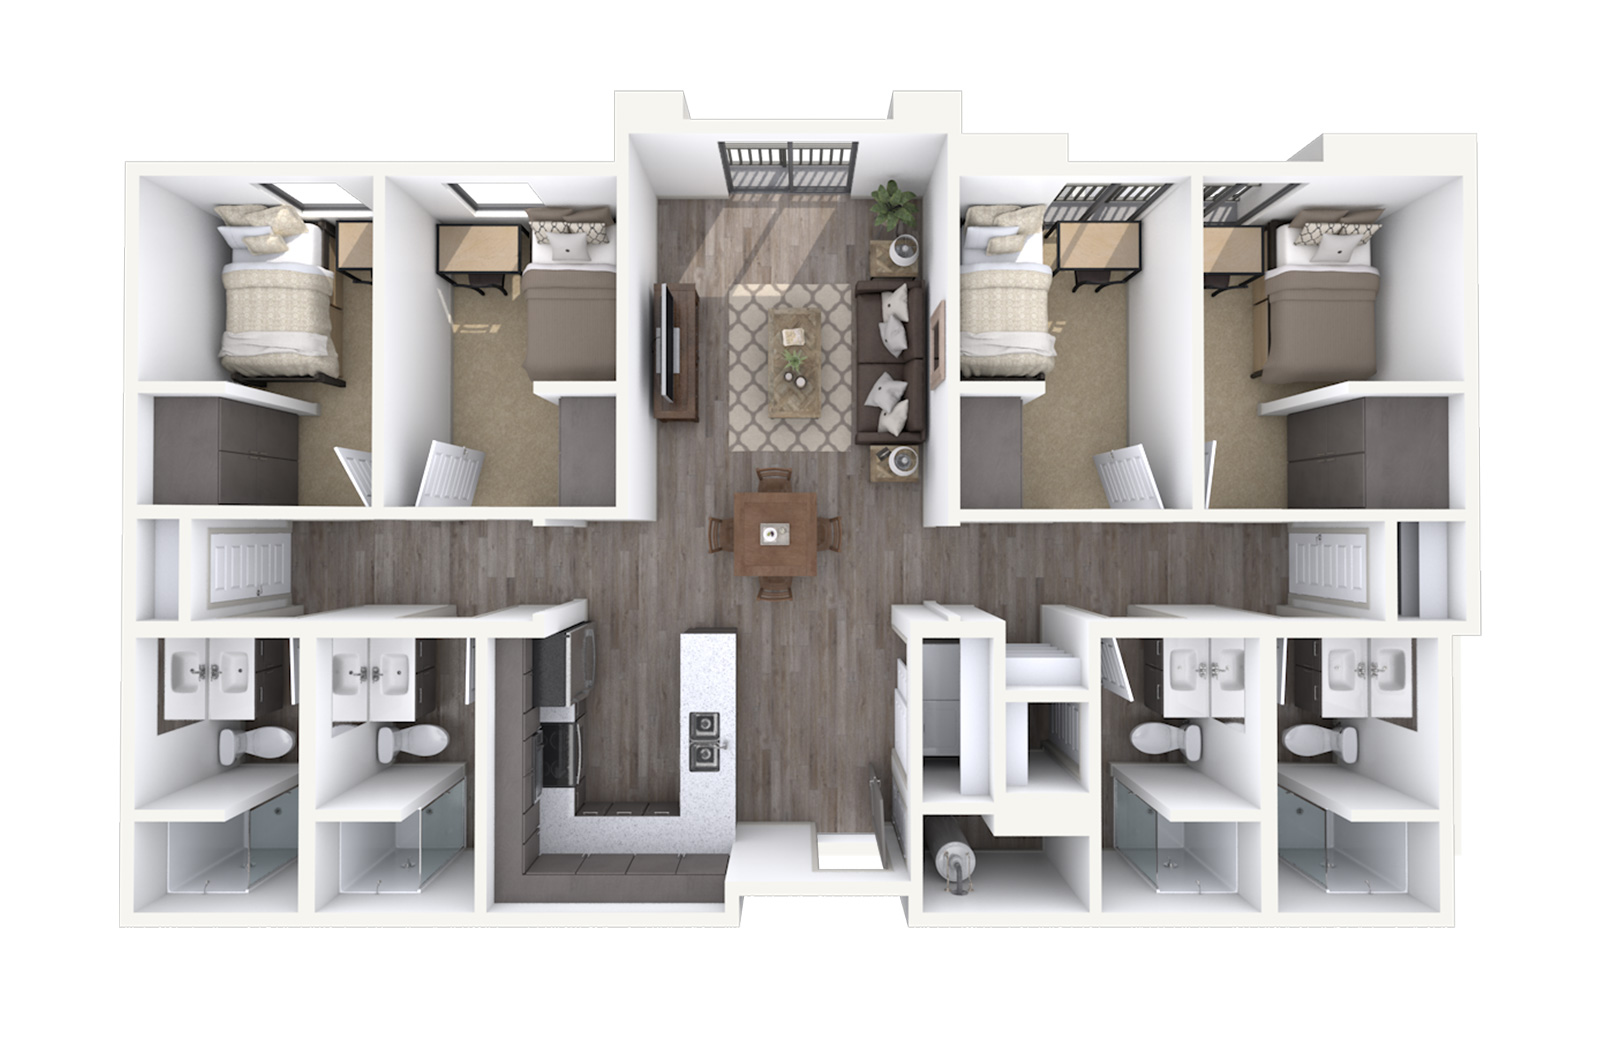 Promenade Place Orem Floor Plans